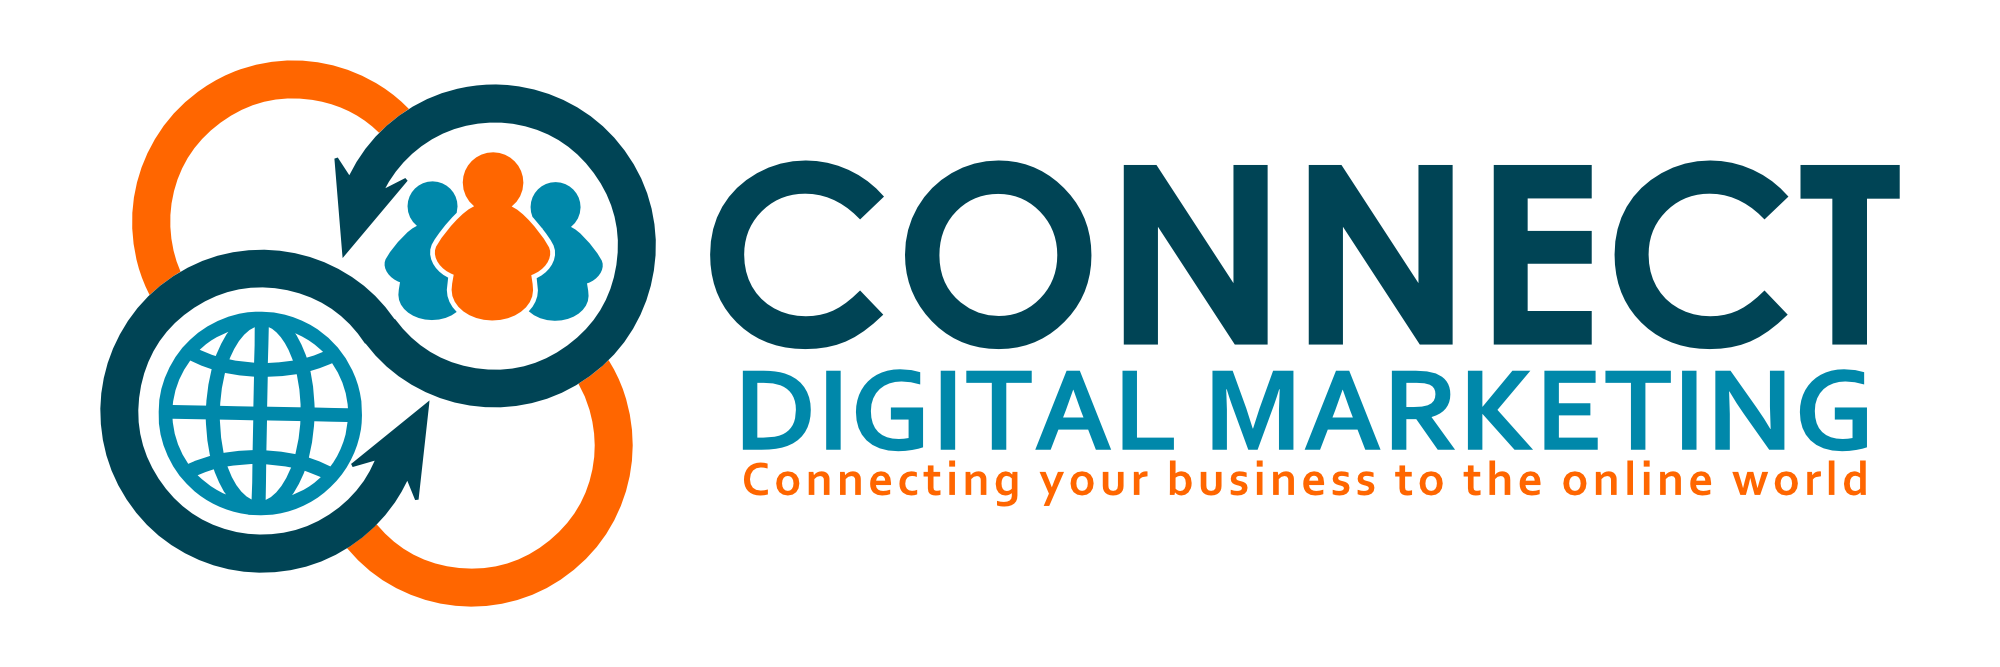 improve your business by connecting with birdhousetechnologies digital marketing company